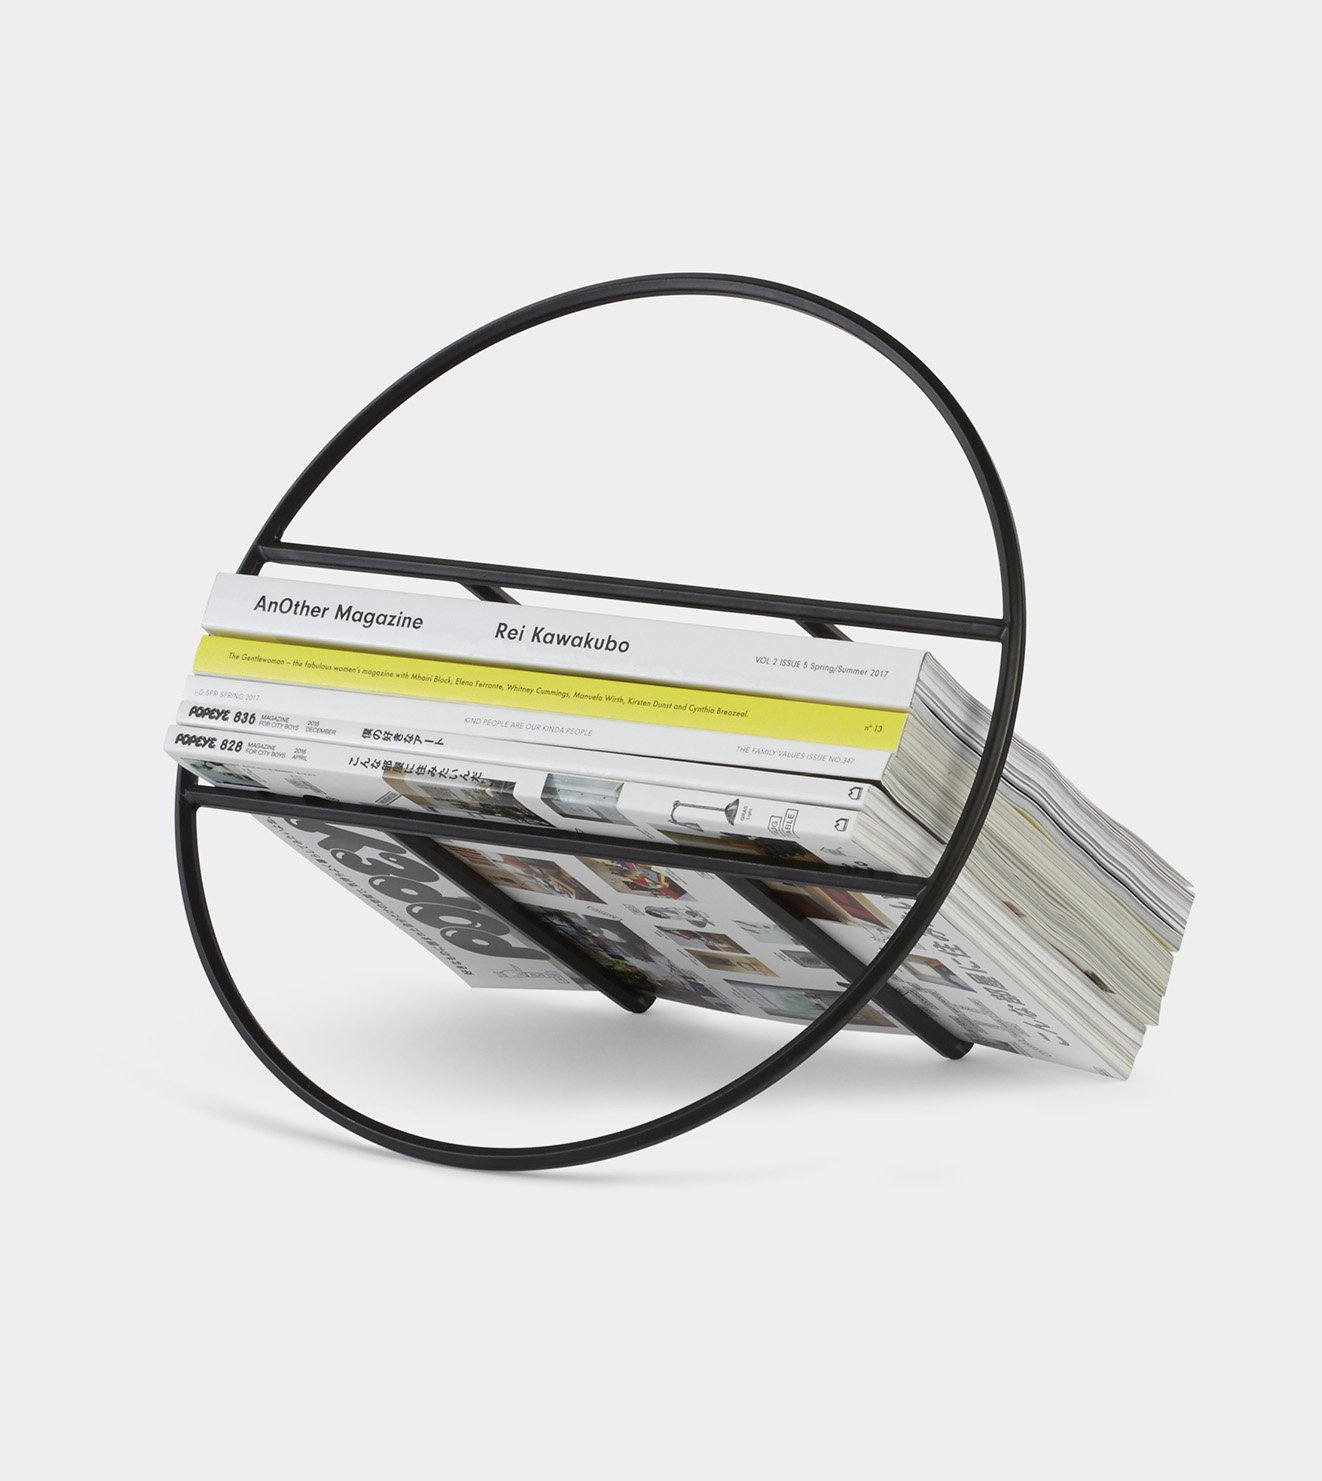 magazine rack, black magazine rack, unique magazine rack, record storage, umbra shift Australia